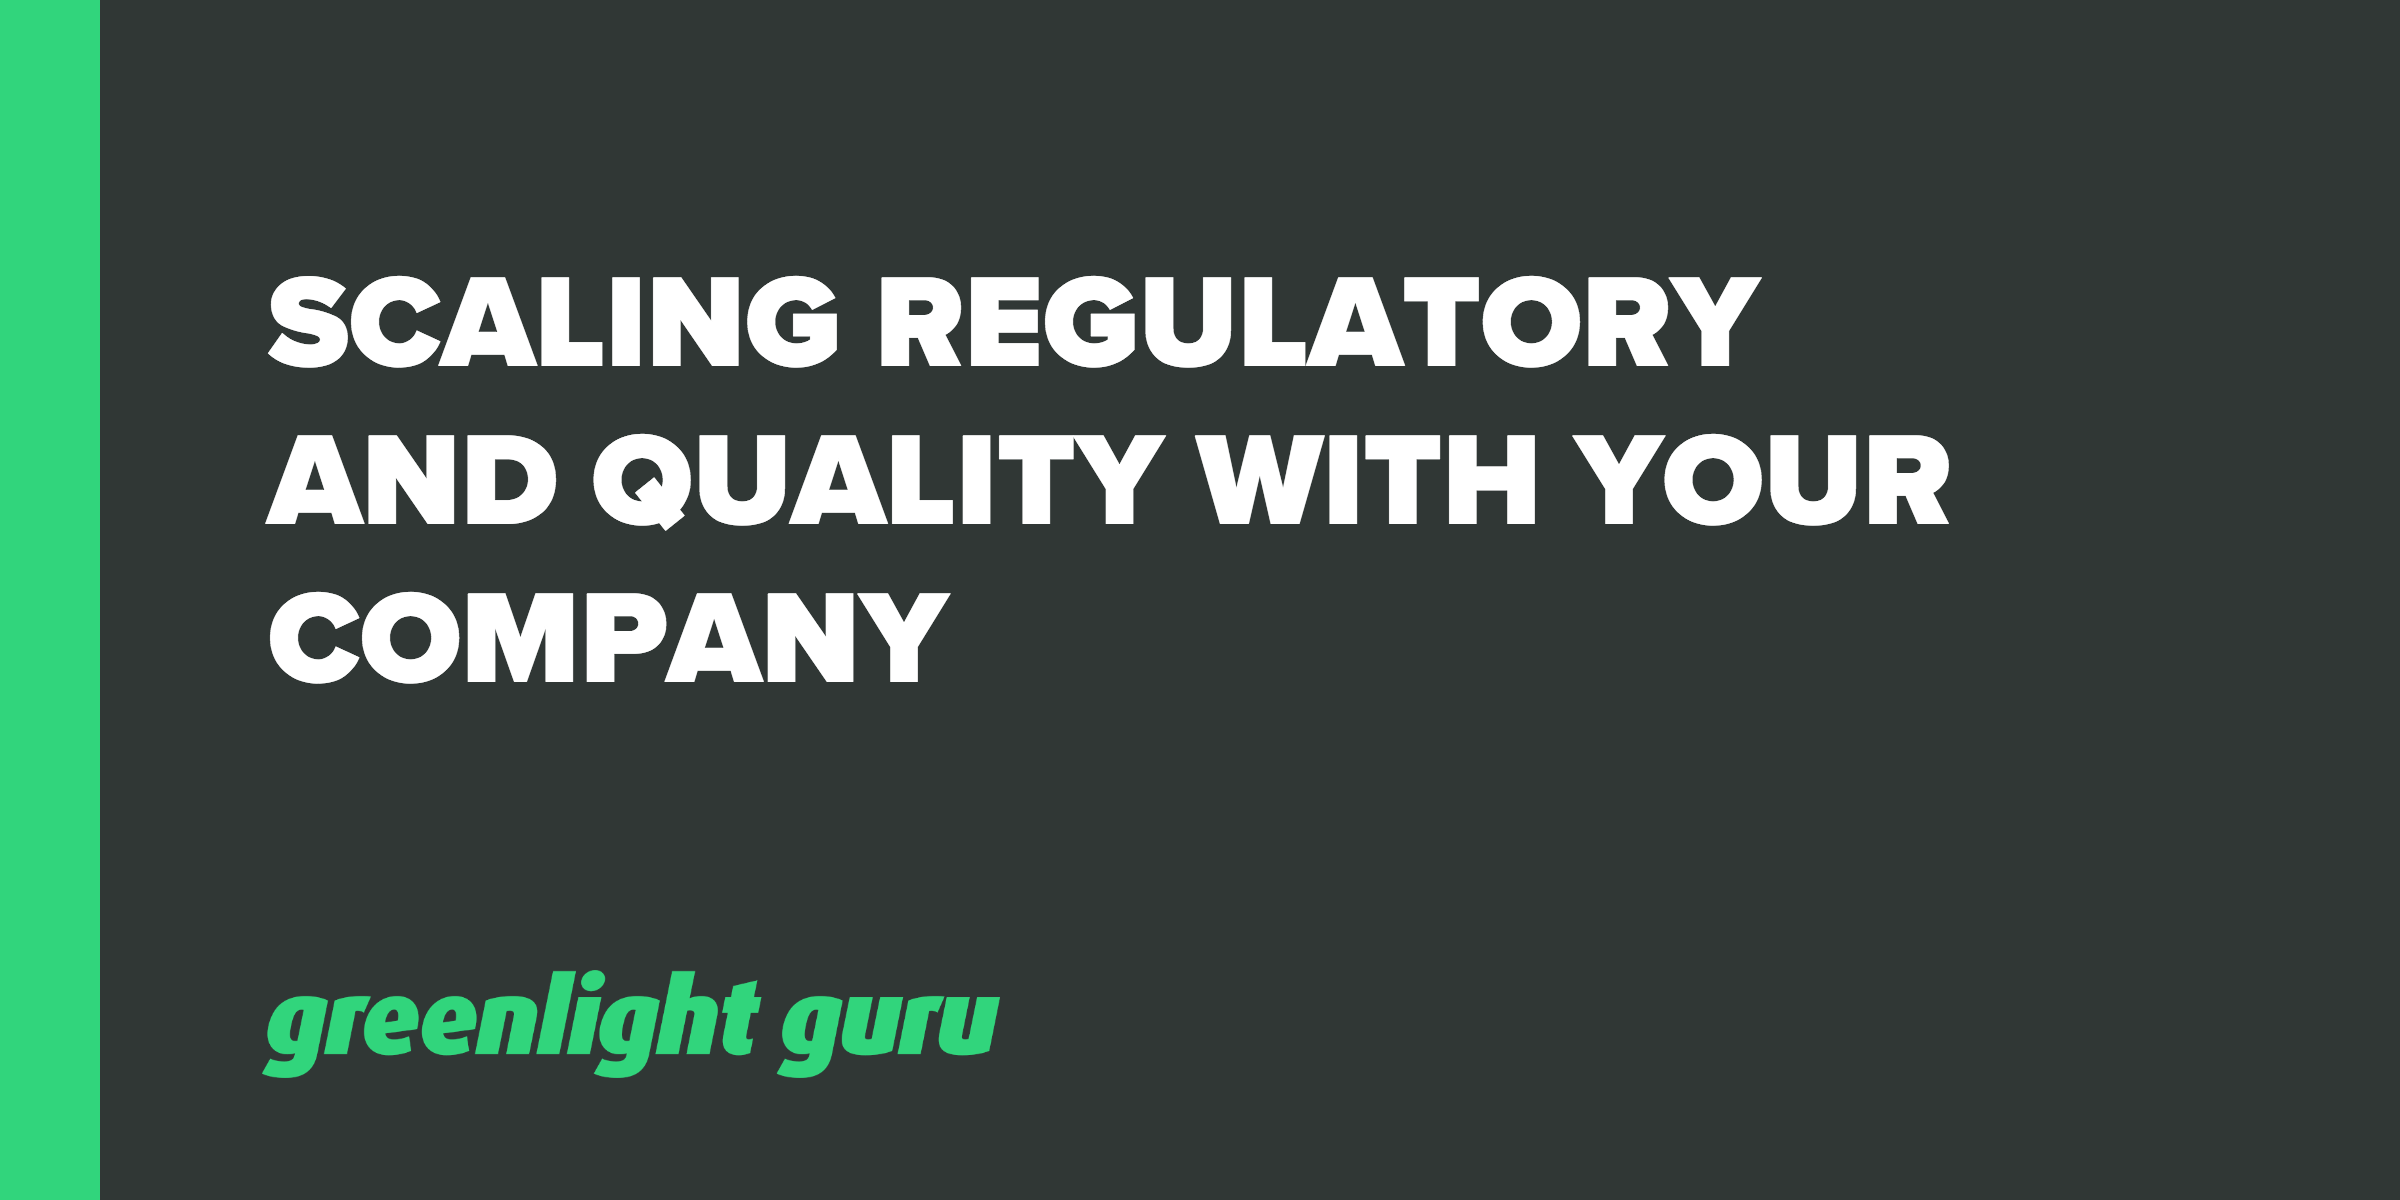 scale-regulatory-and-quality